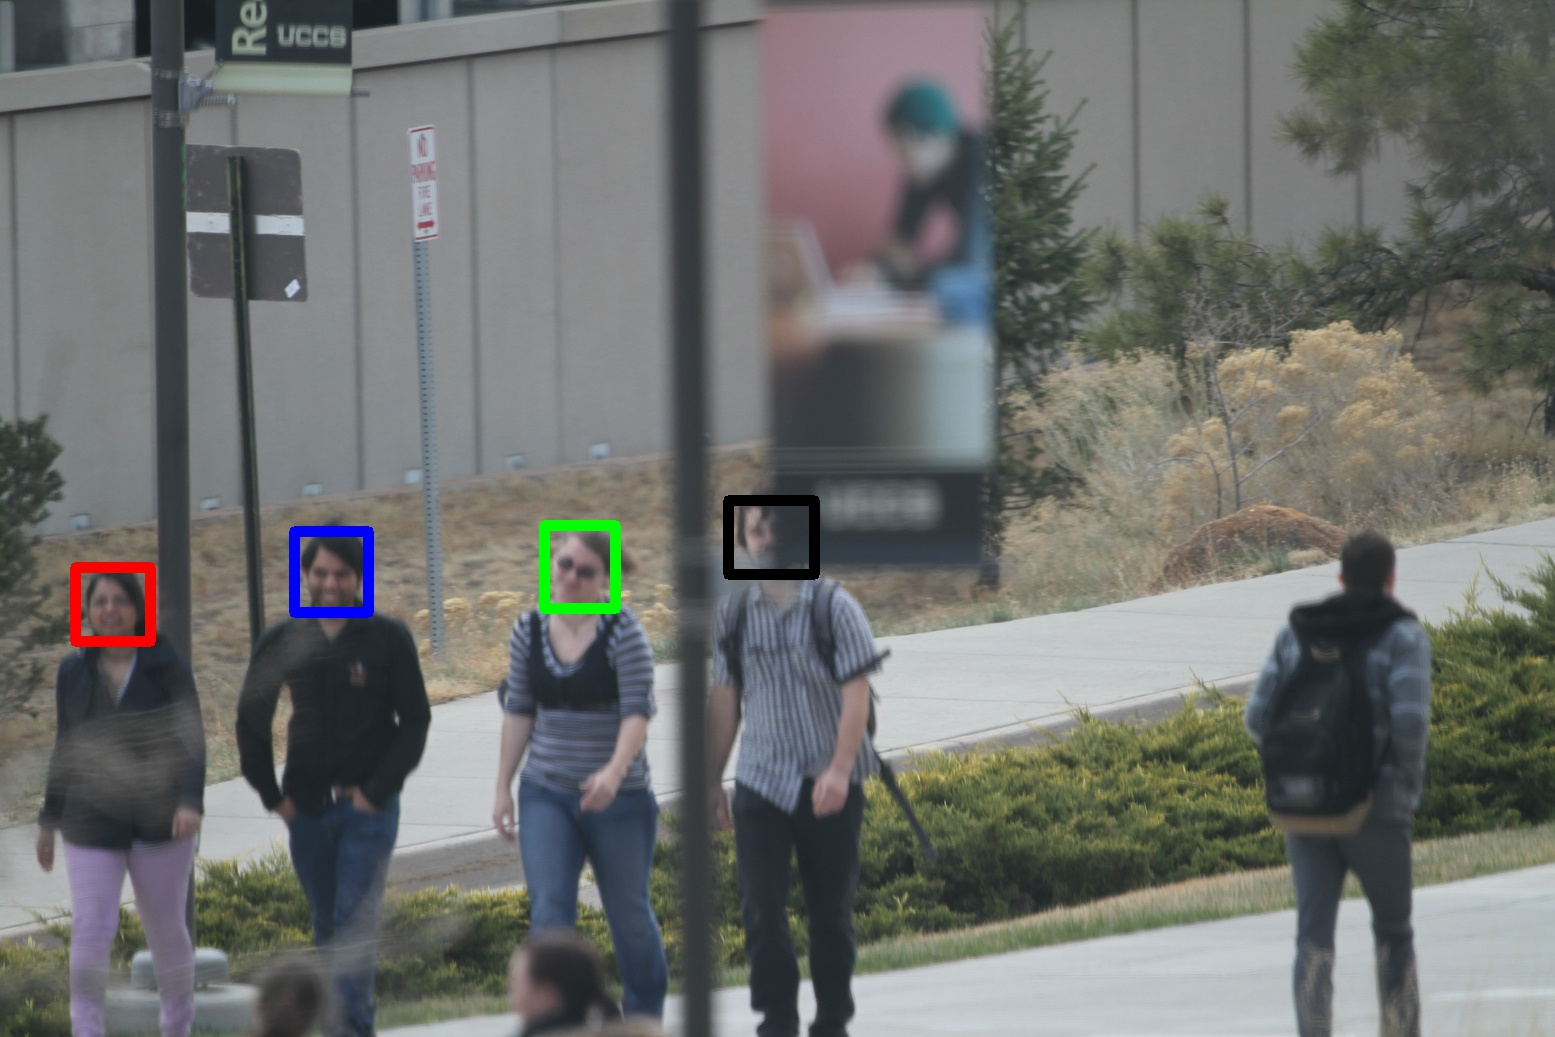 2nd Unconstrained Face Detection and Open Set Recognition